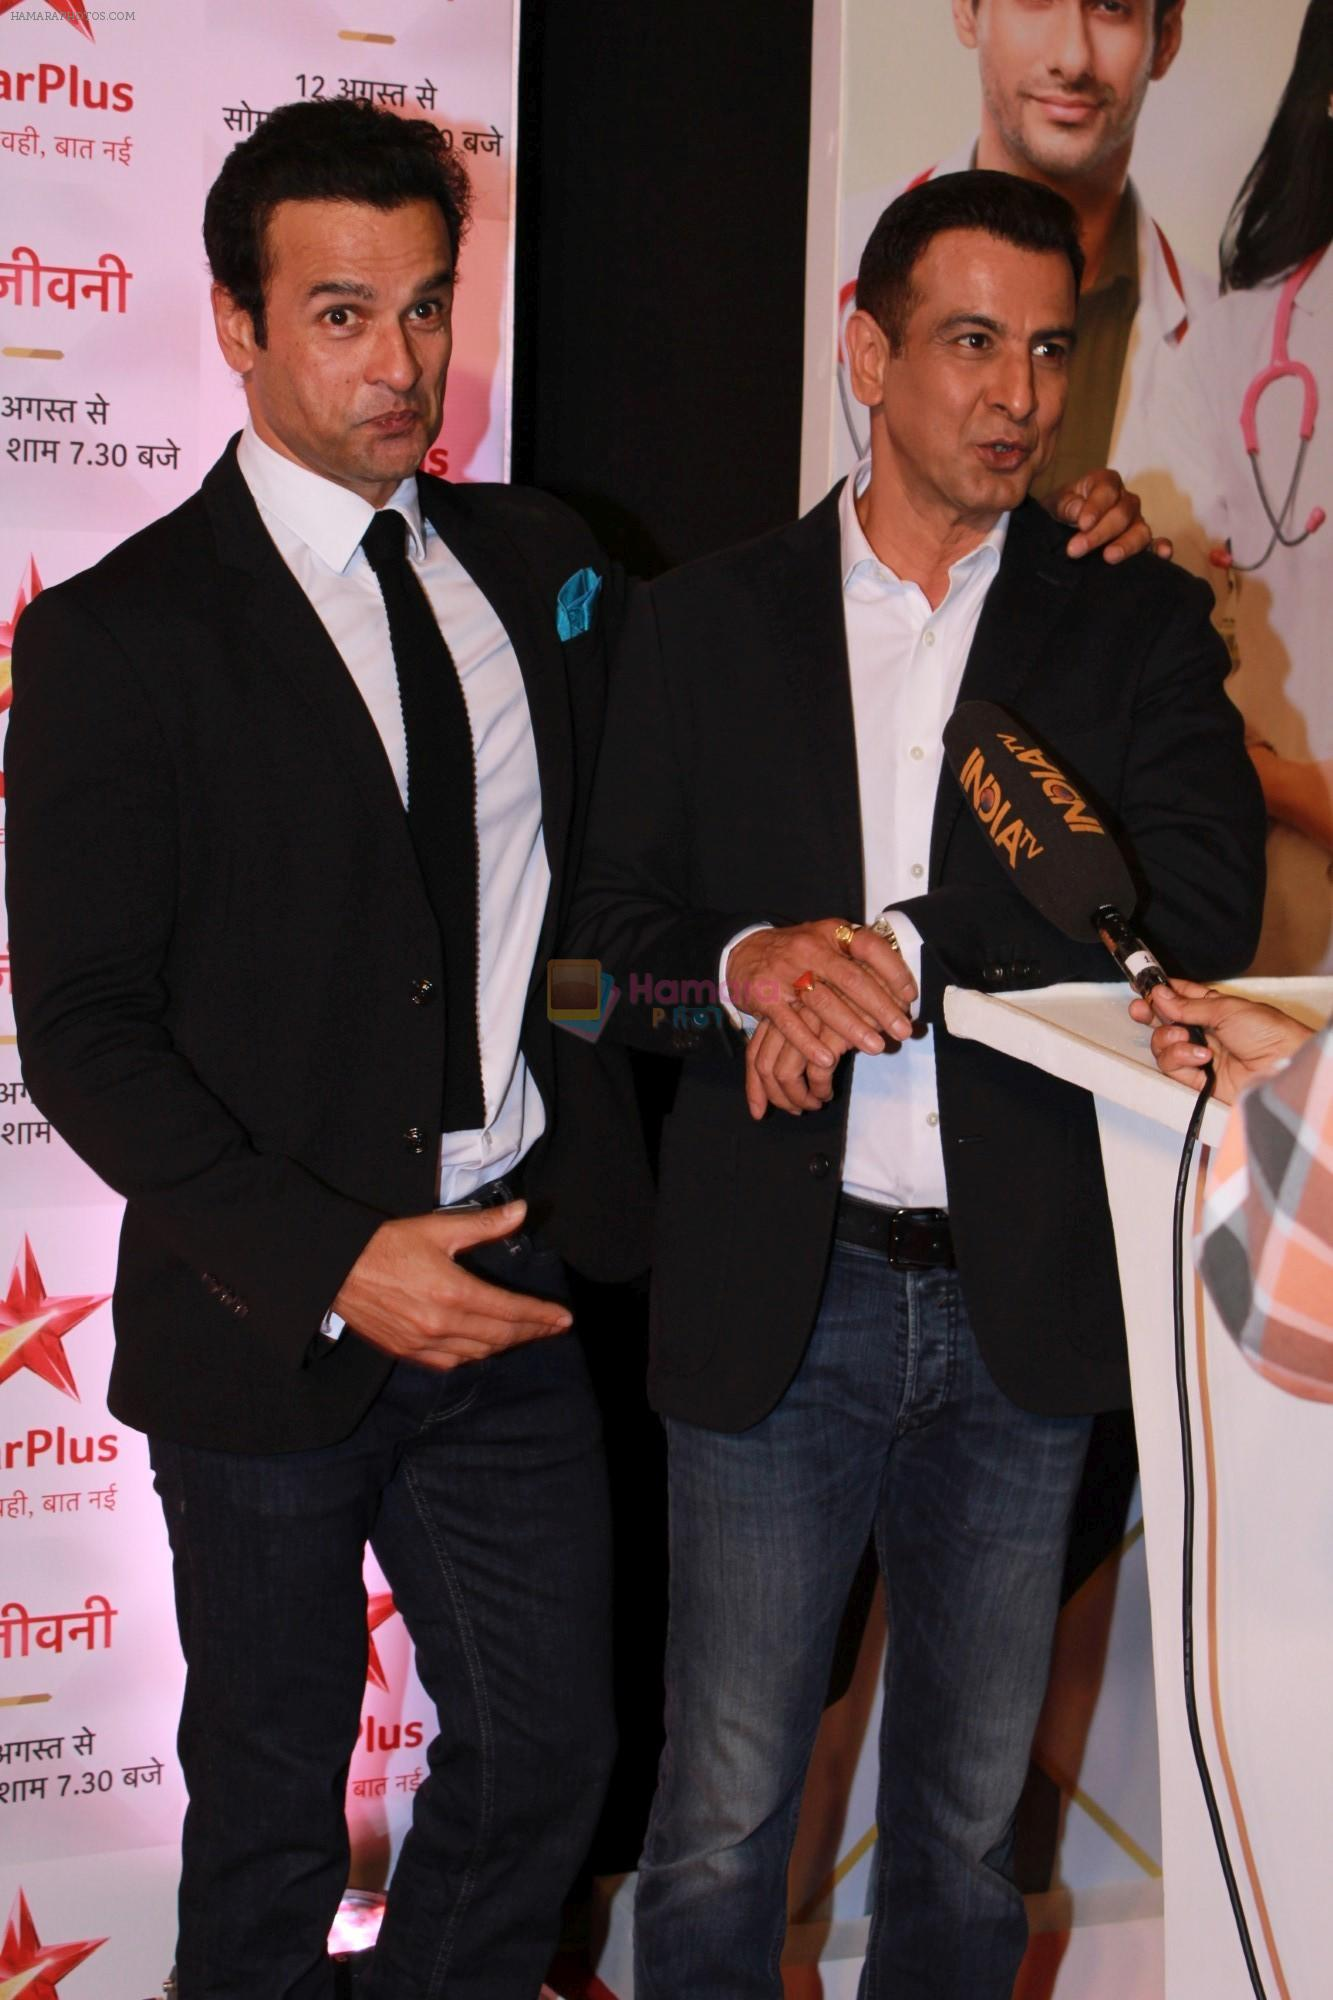 Ronit Roy, Rohit Roy at the Red Carpet of Star Plus serial Sanjivani 2 on 31st July 2019